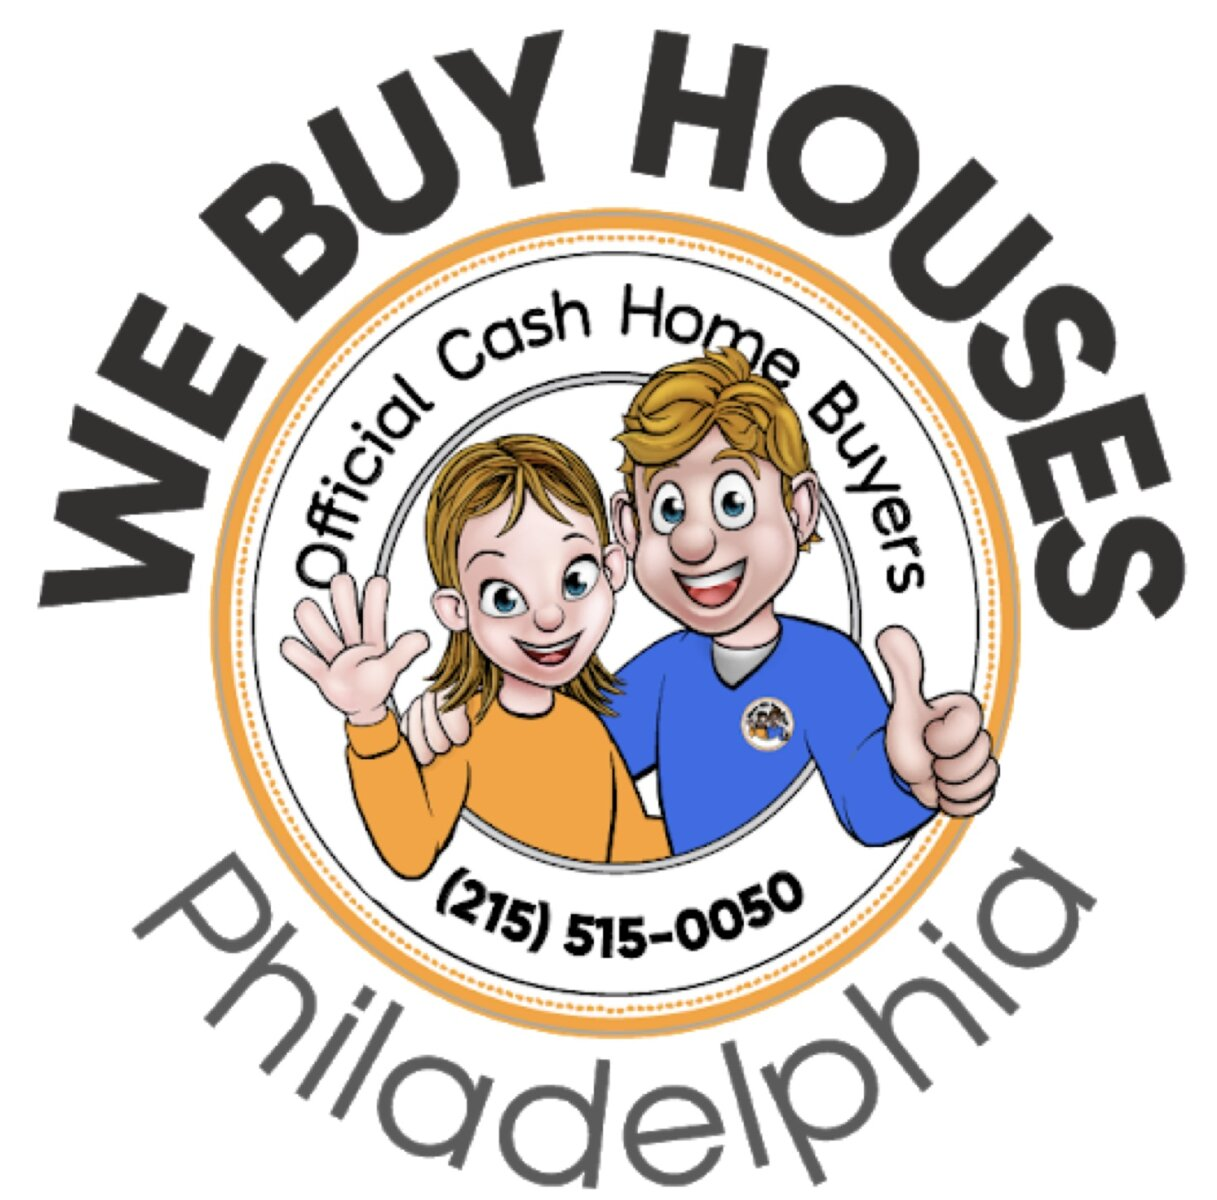 We Buy Houses Philadelphia logo